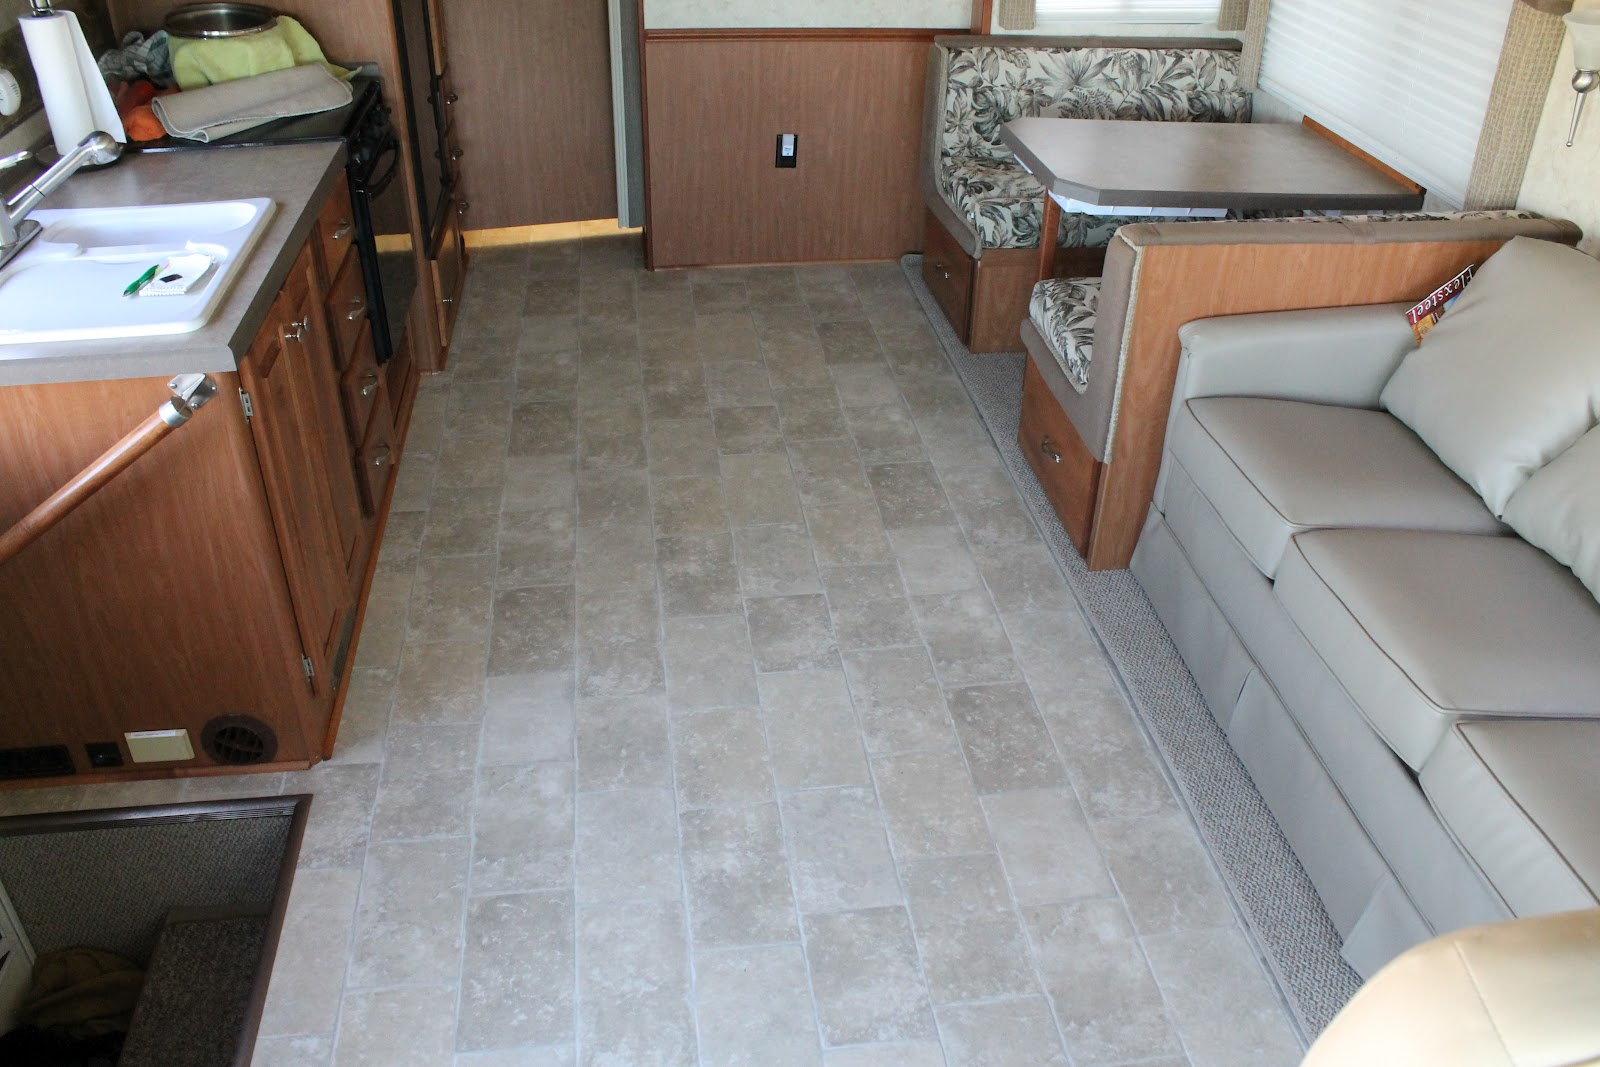 Installing linoleum in a bathroom - Countryside Interiors Transforming Rvs And Trailers